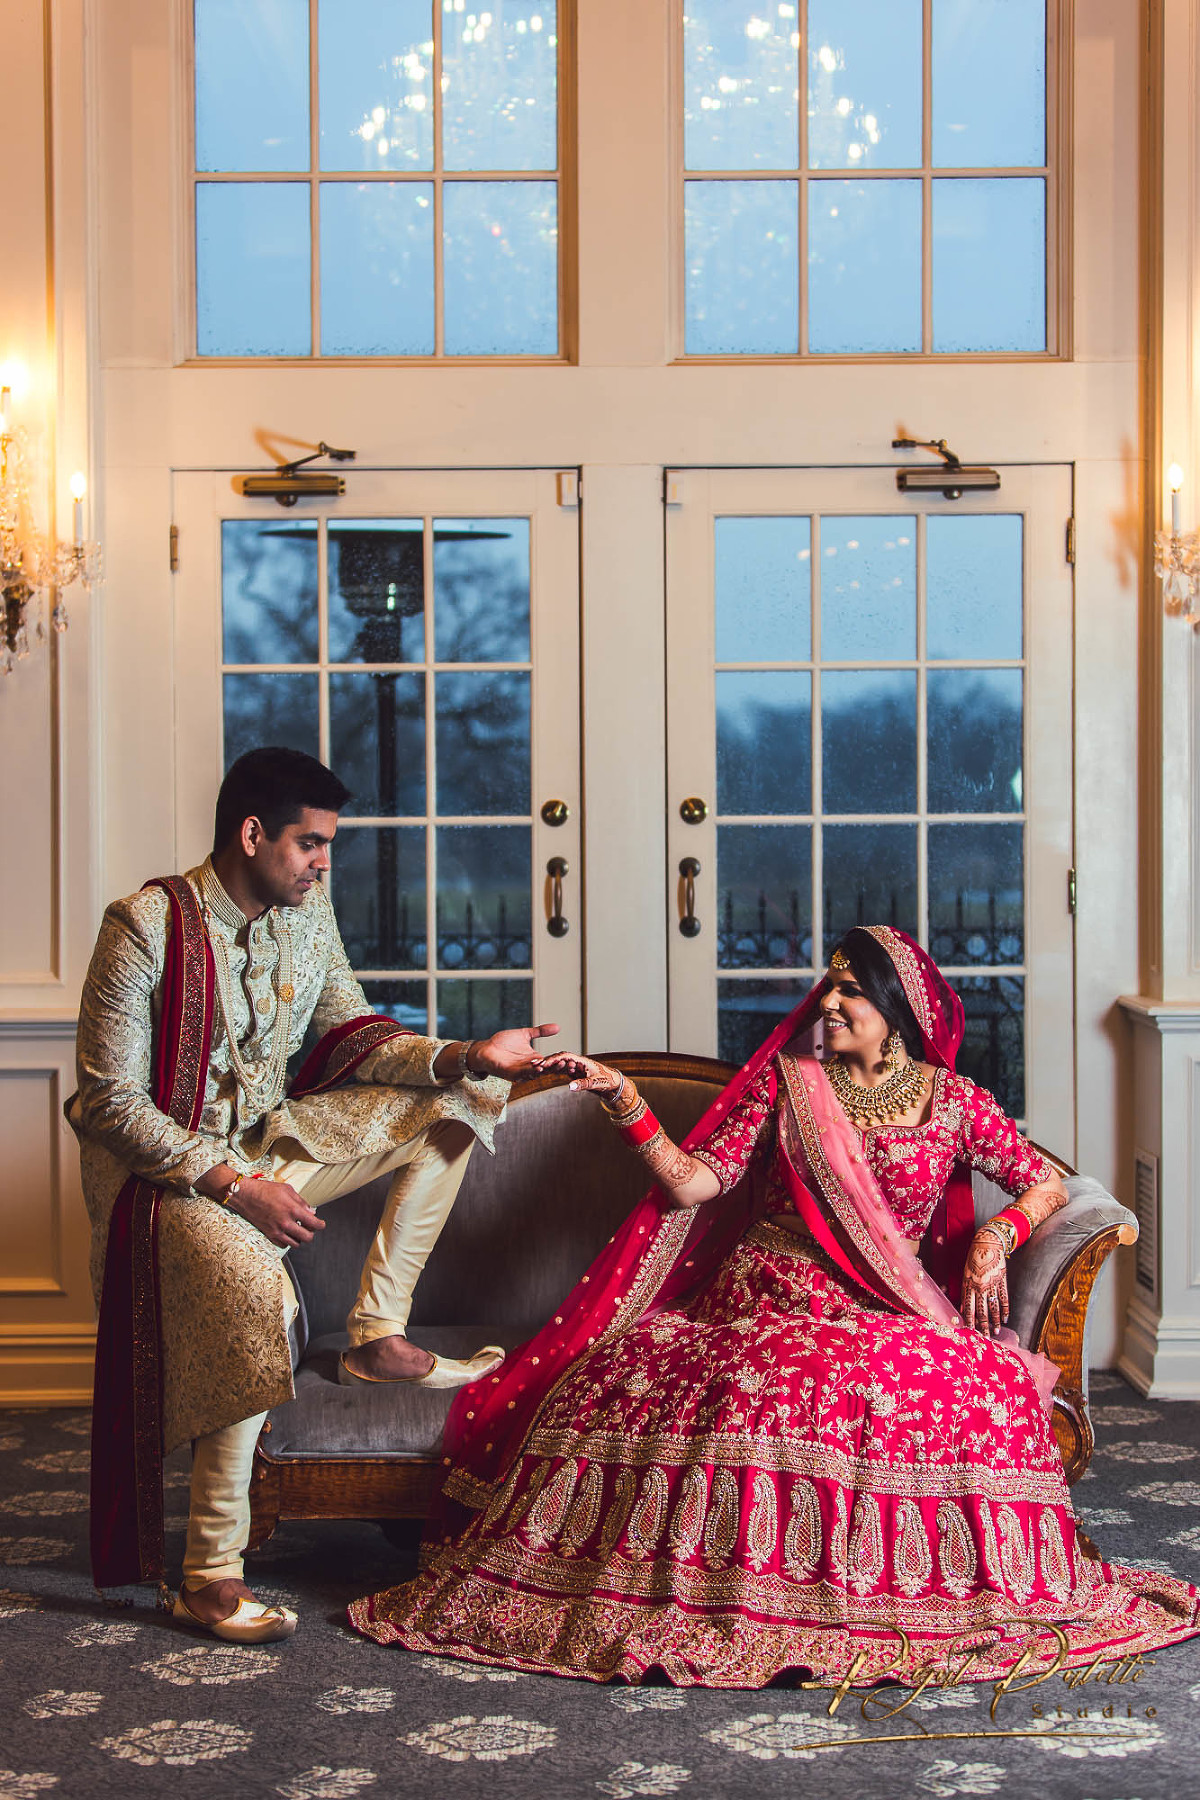 Indian Wedding Photography in NJ, PA, and DE area